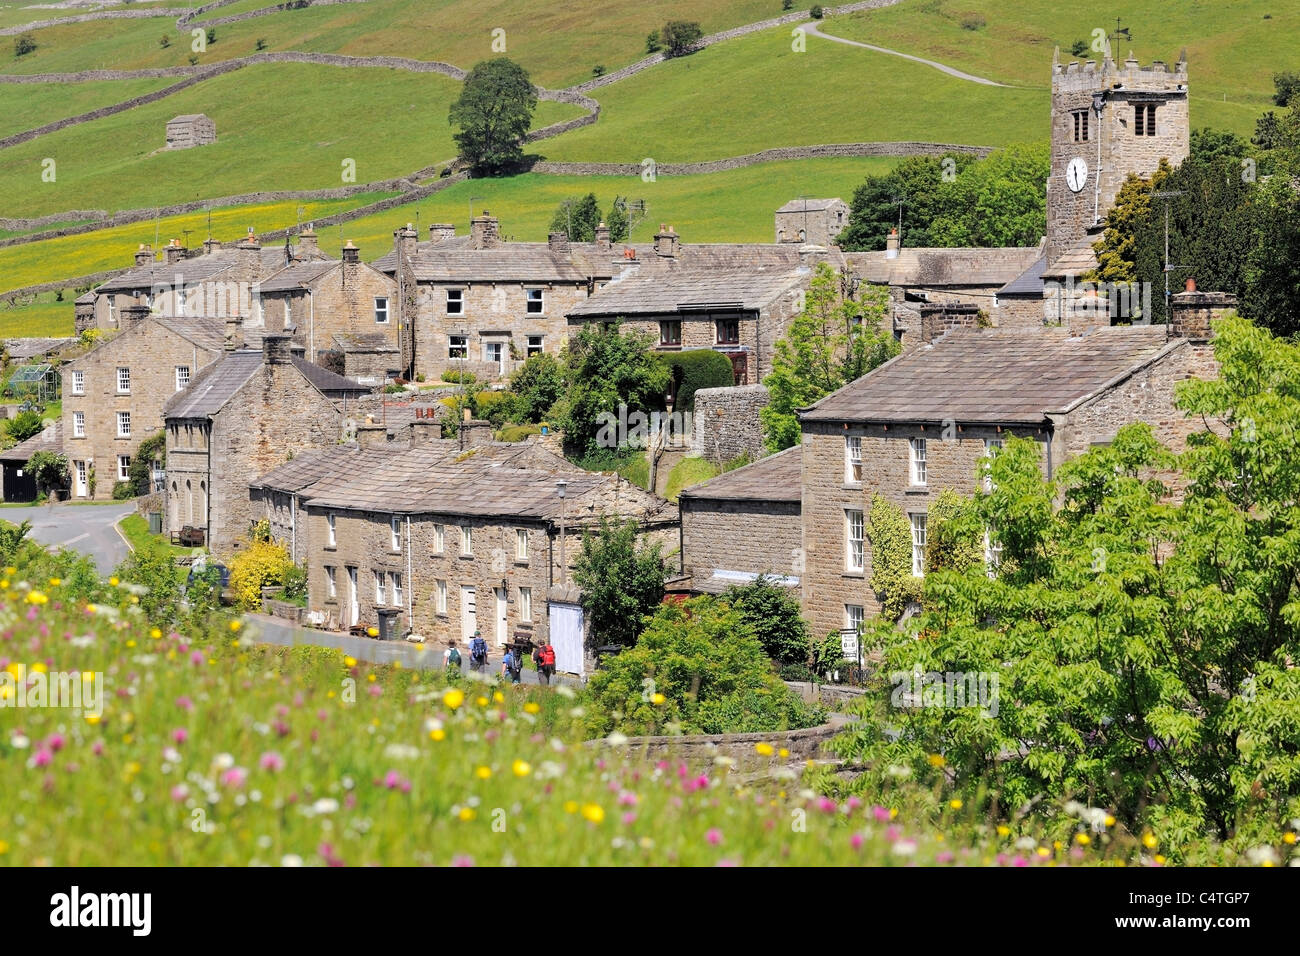 The attractive village of Muker in Swaledale, Yorkshire, England - Stock Image